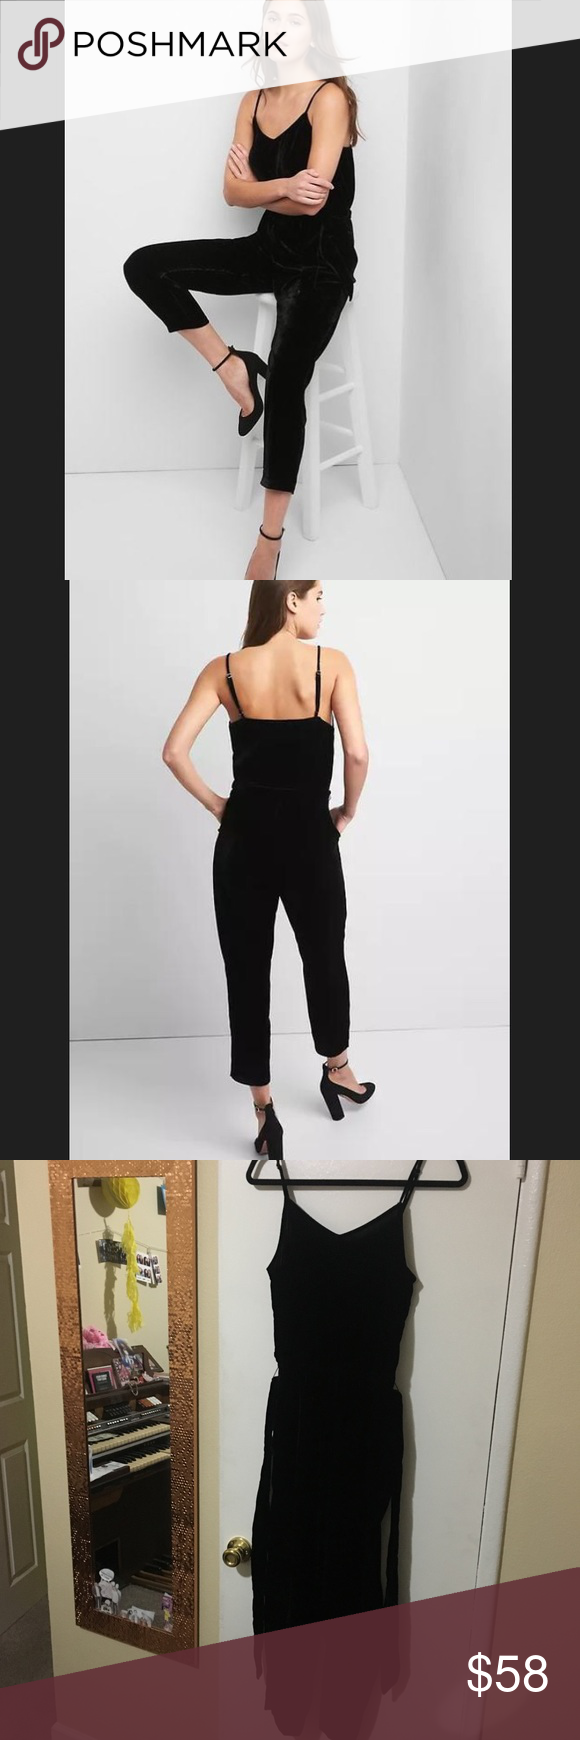 8bff54941fc GAP Black Velvet Jumpsuit OBO GAP Velvet Tie-Belt Jumpsuit in True Black.  Size